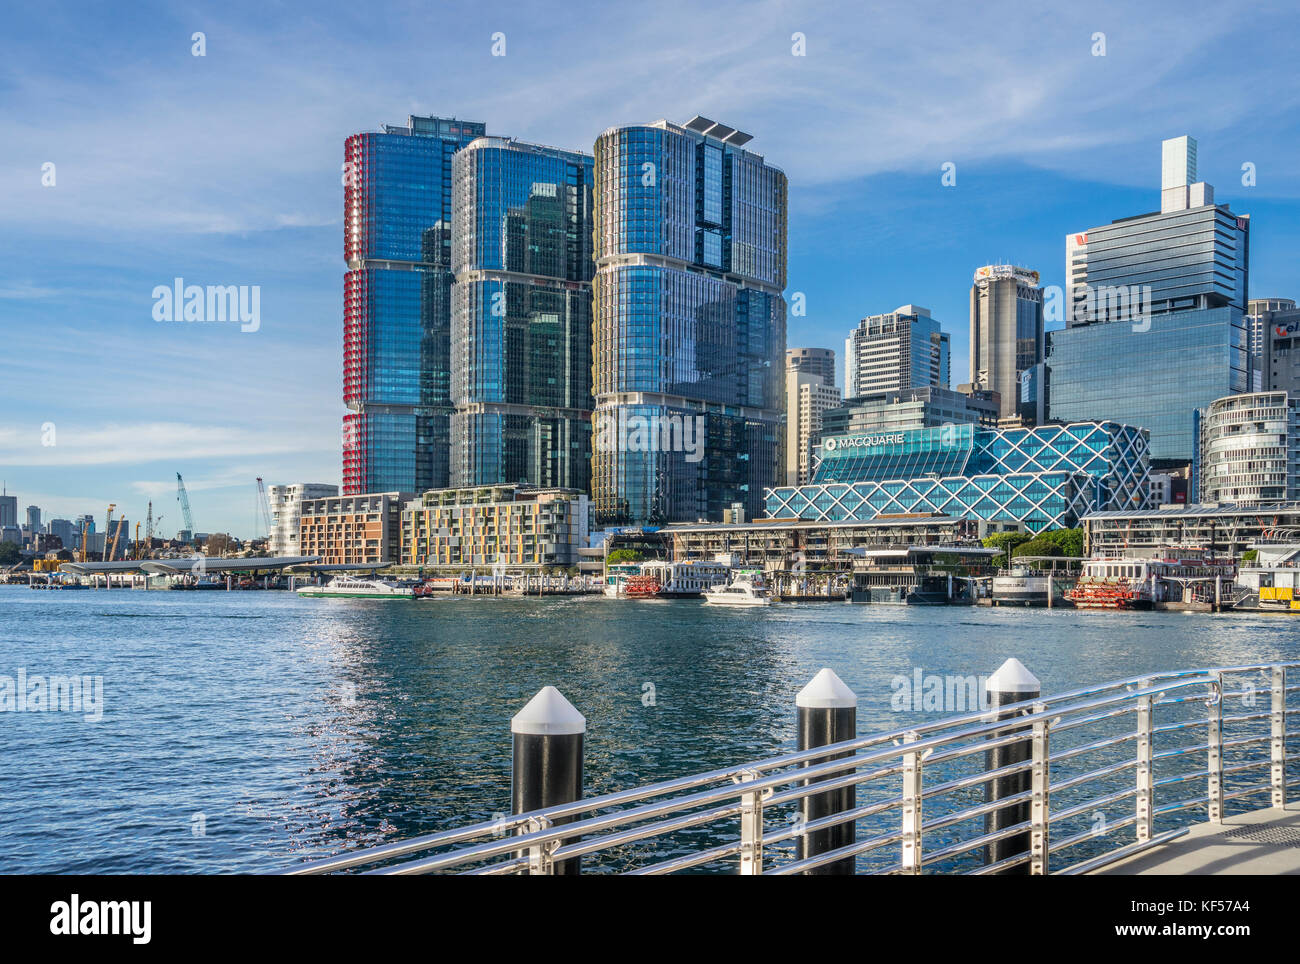 Australia, New South Wales; Sydney, Darling Harbour, view of Darling Harbour and the Barangaroo International Towers - Stock Image